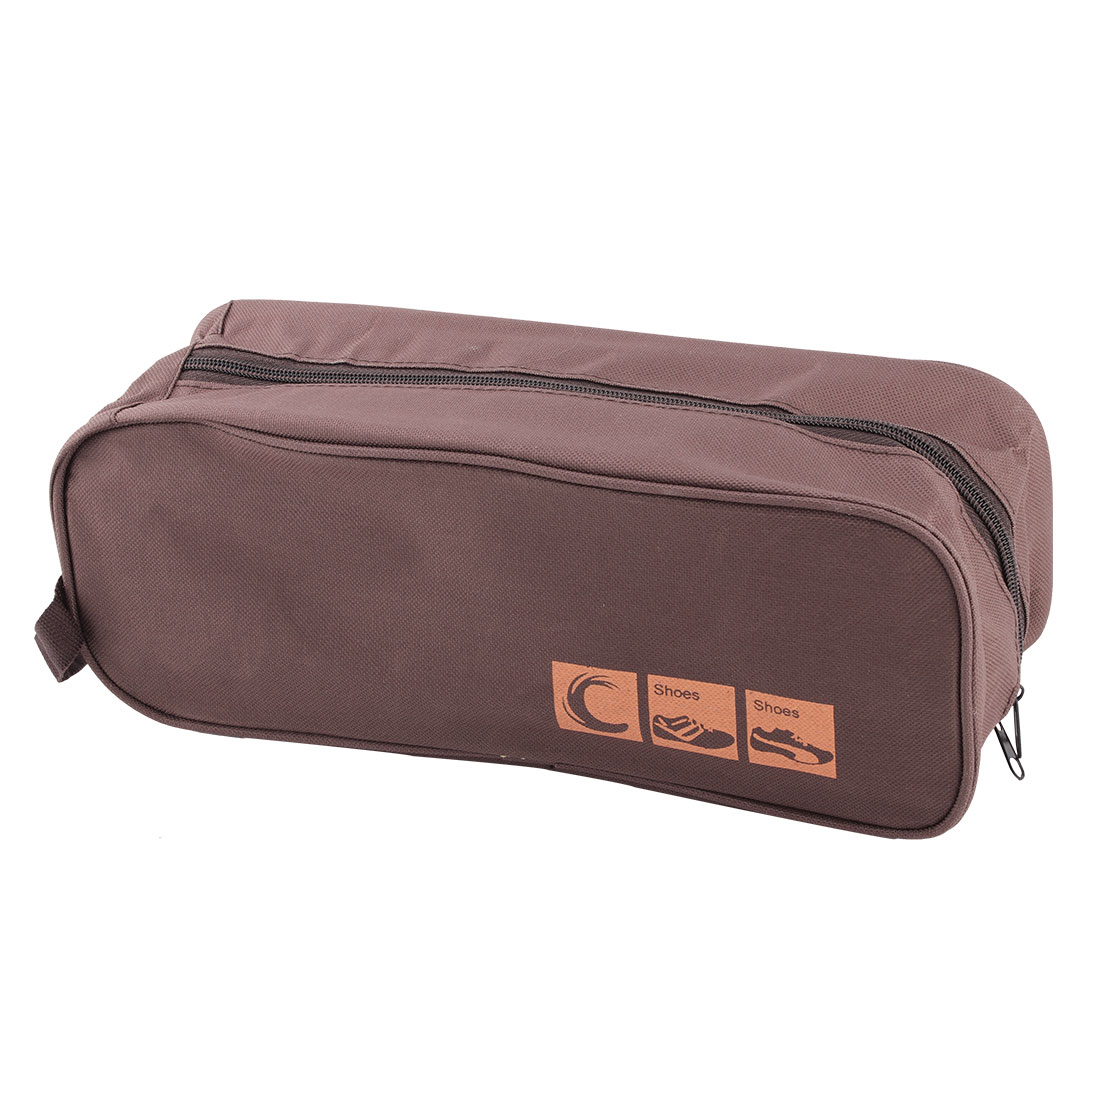 Travel Household Nylon Zippered Clothes Cosmetic Shoes Bag Organizer Brown